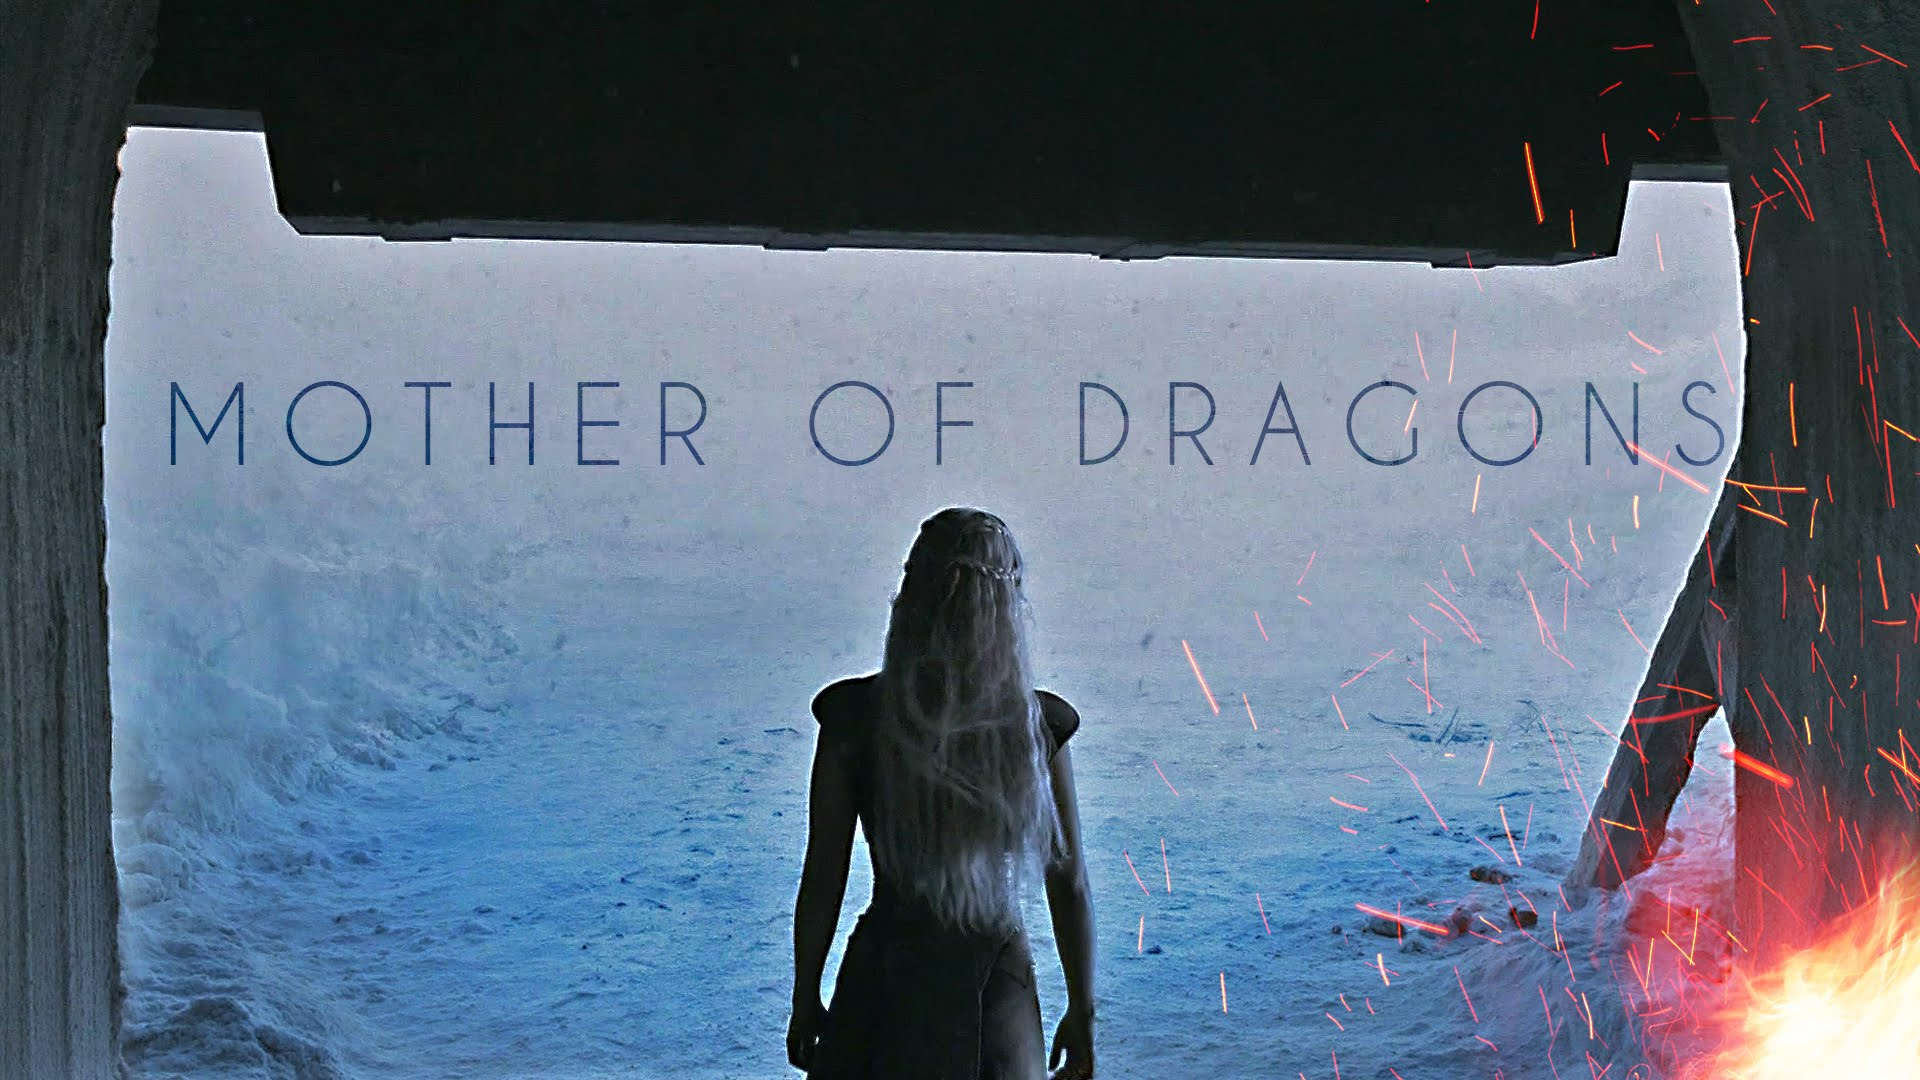 Mother of Dragons, A Supercut Tribute to Daenerys Targaryen's Powerful Rise on Game of Thrones